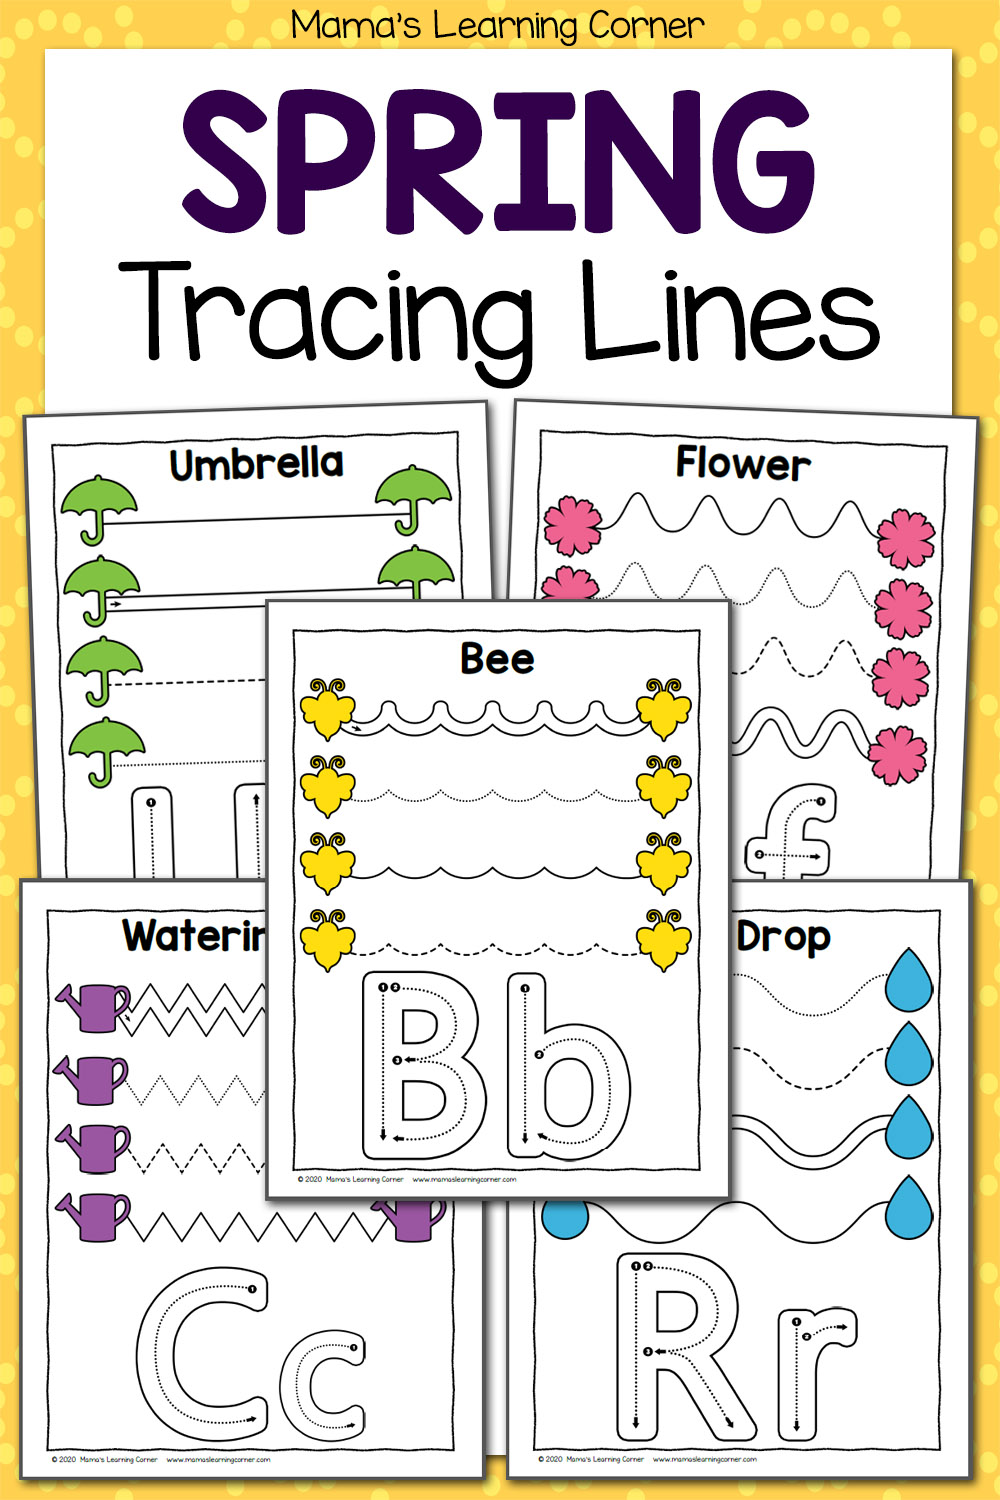 Spring Tracing Worksheets for Preschool - Mamas Learning ...